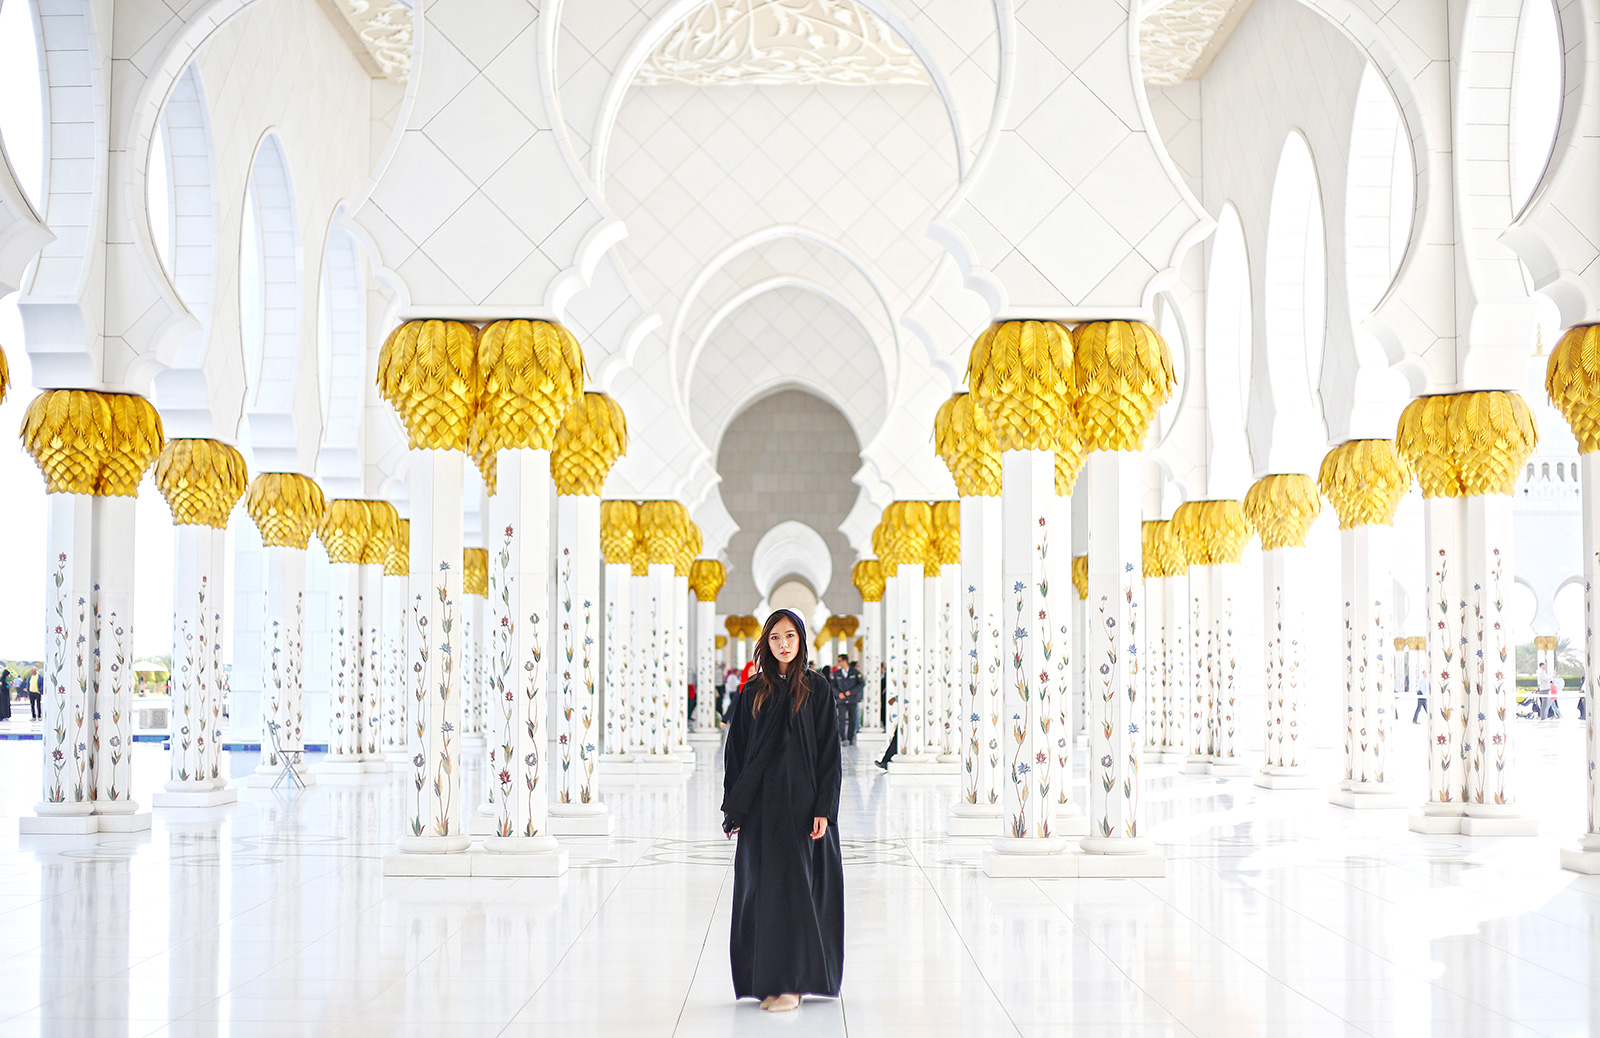 Sheikh Zayed Grand Mosque | www.itscamilleco.com